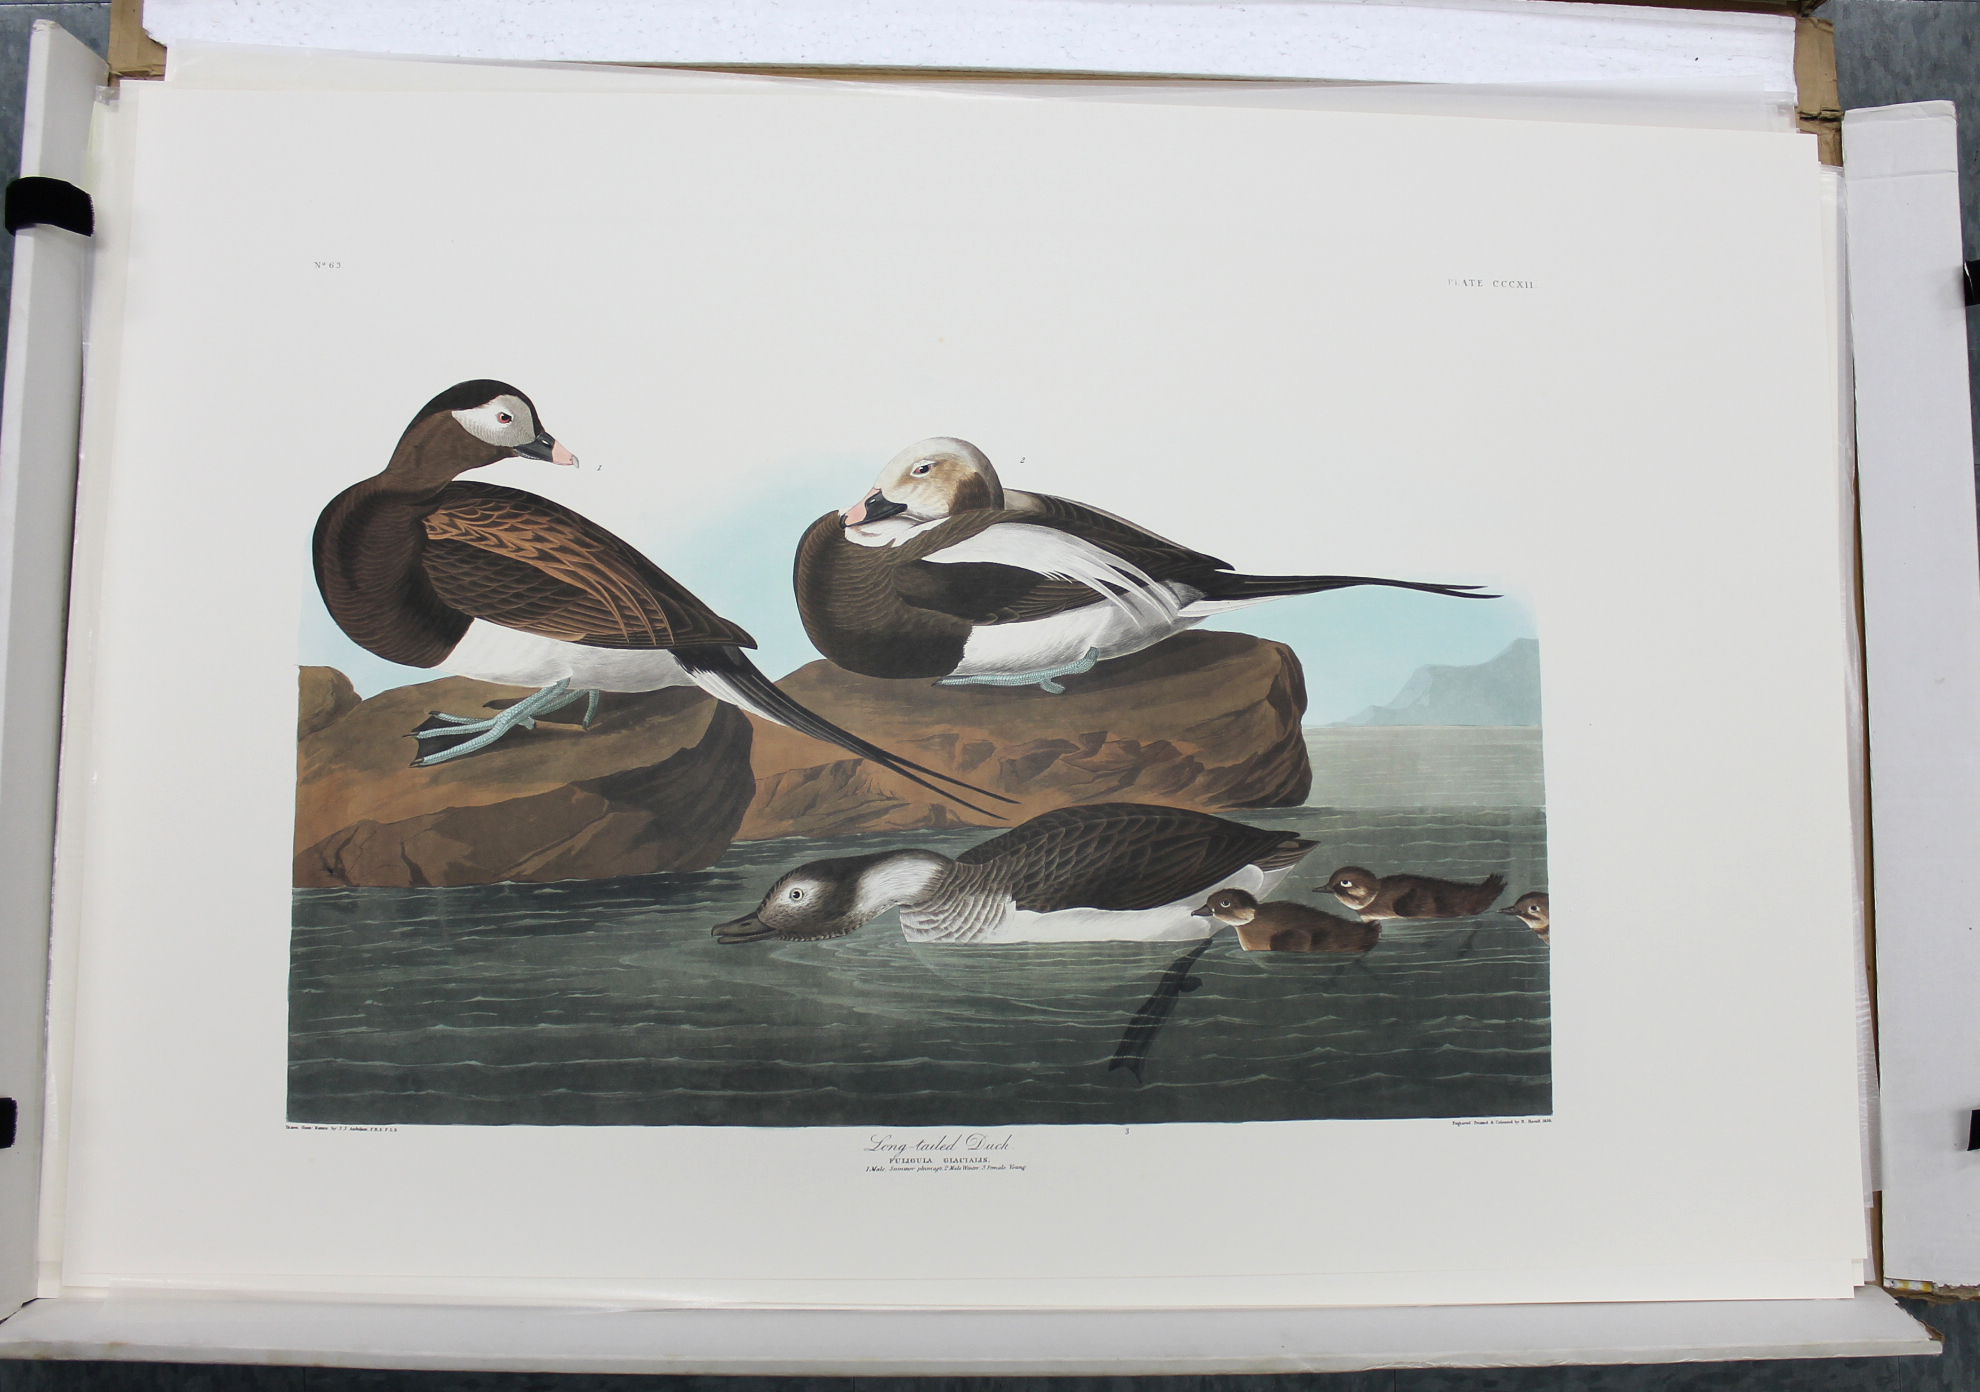 Long Tailed Duck (CCCXII)